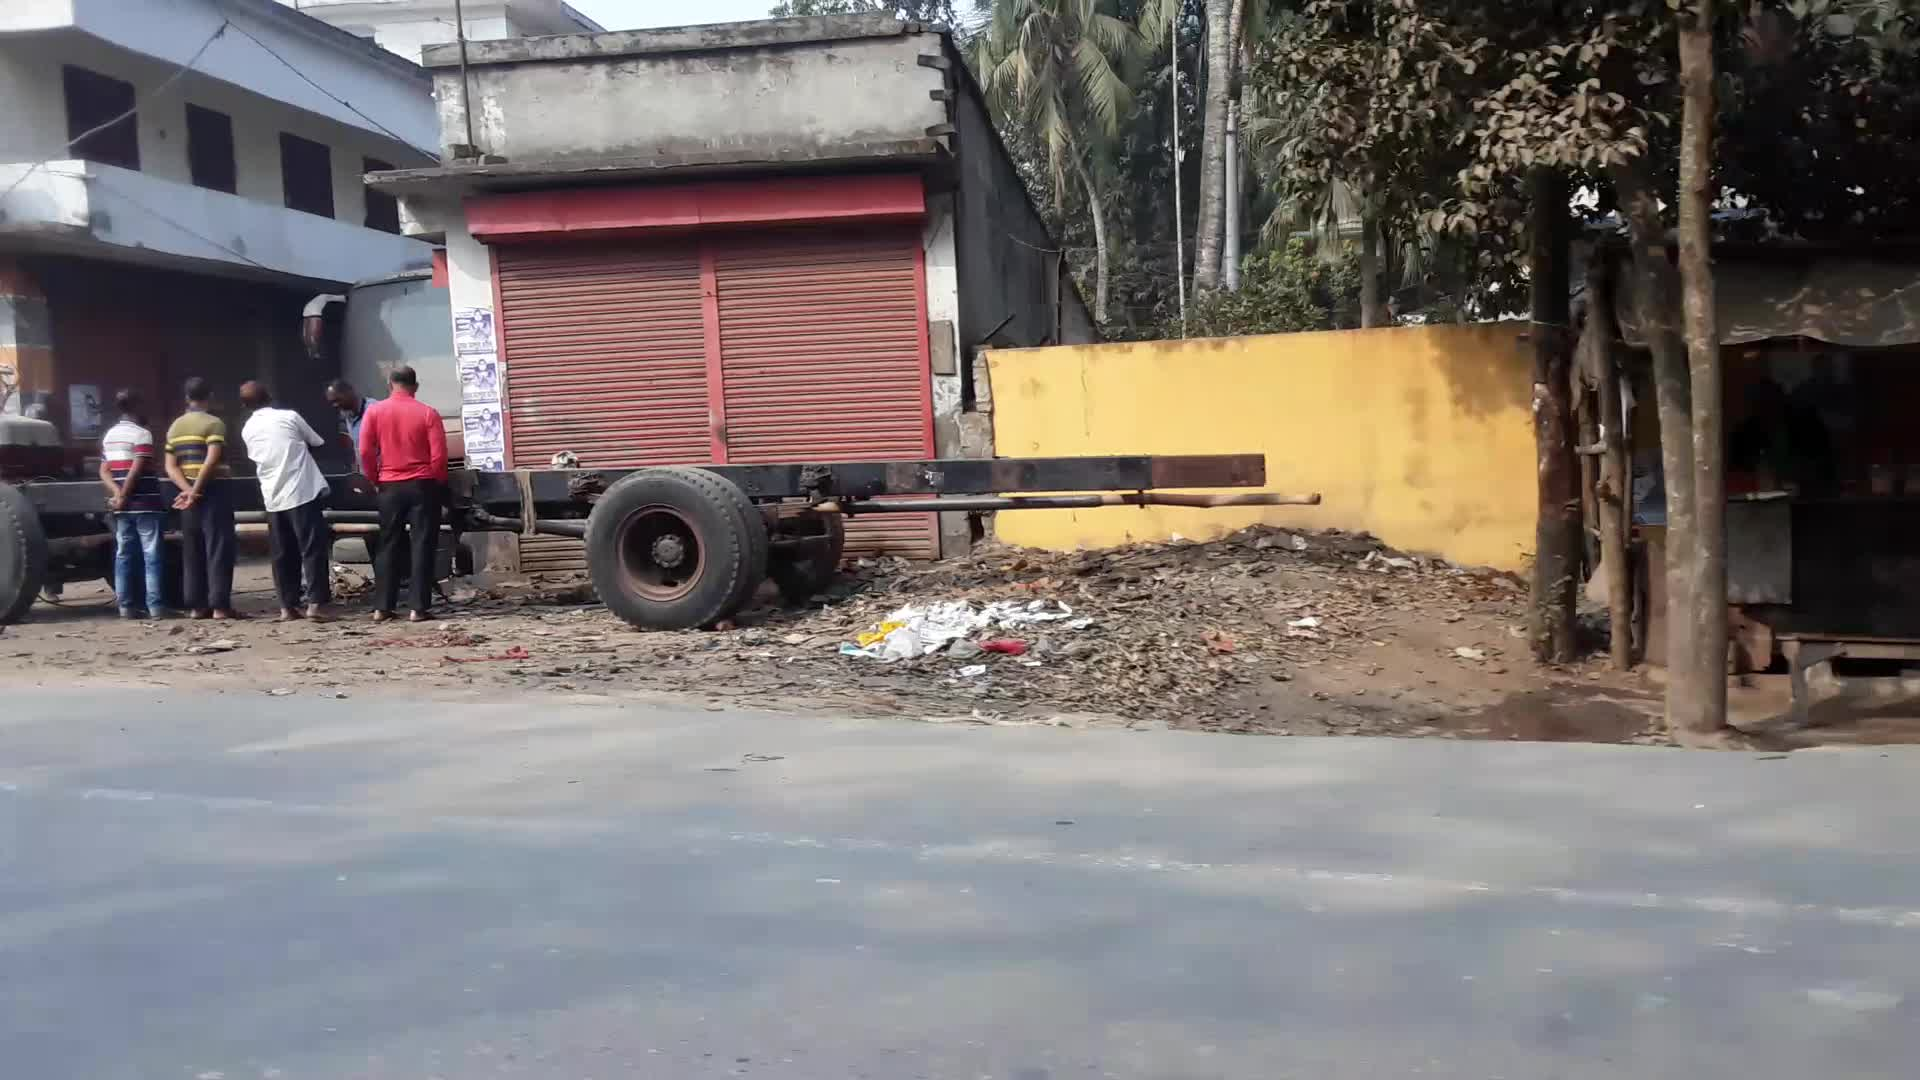 This video is of Satkhira while walking through some shops and roads.